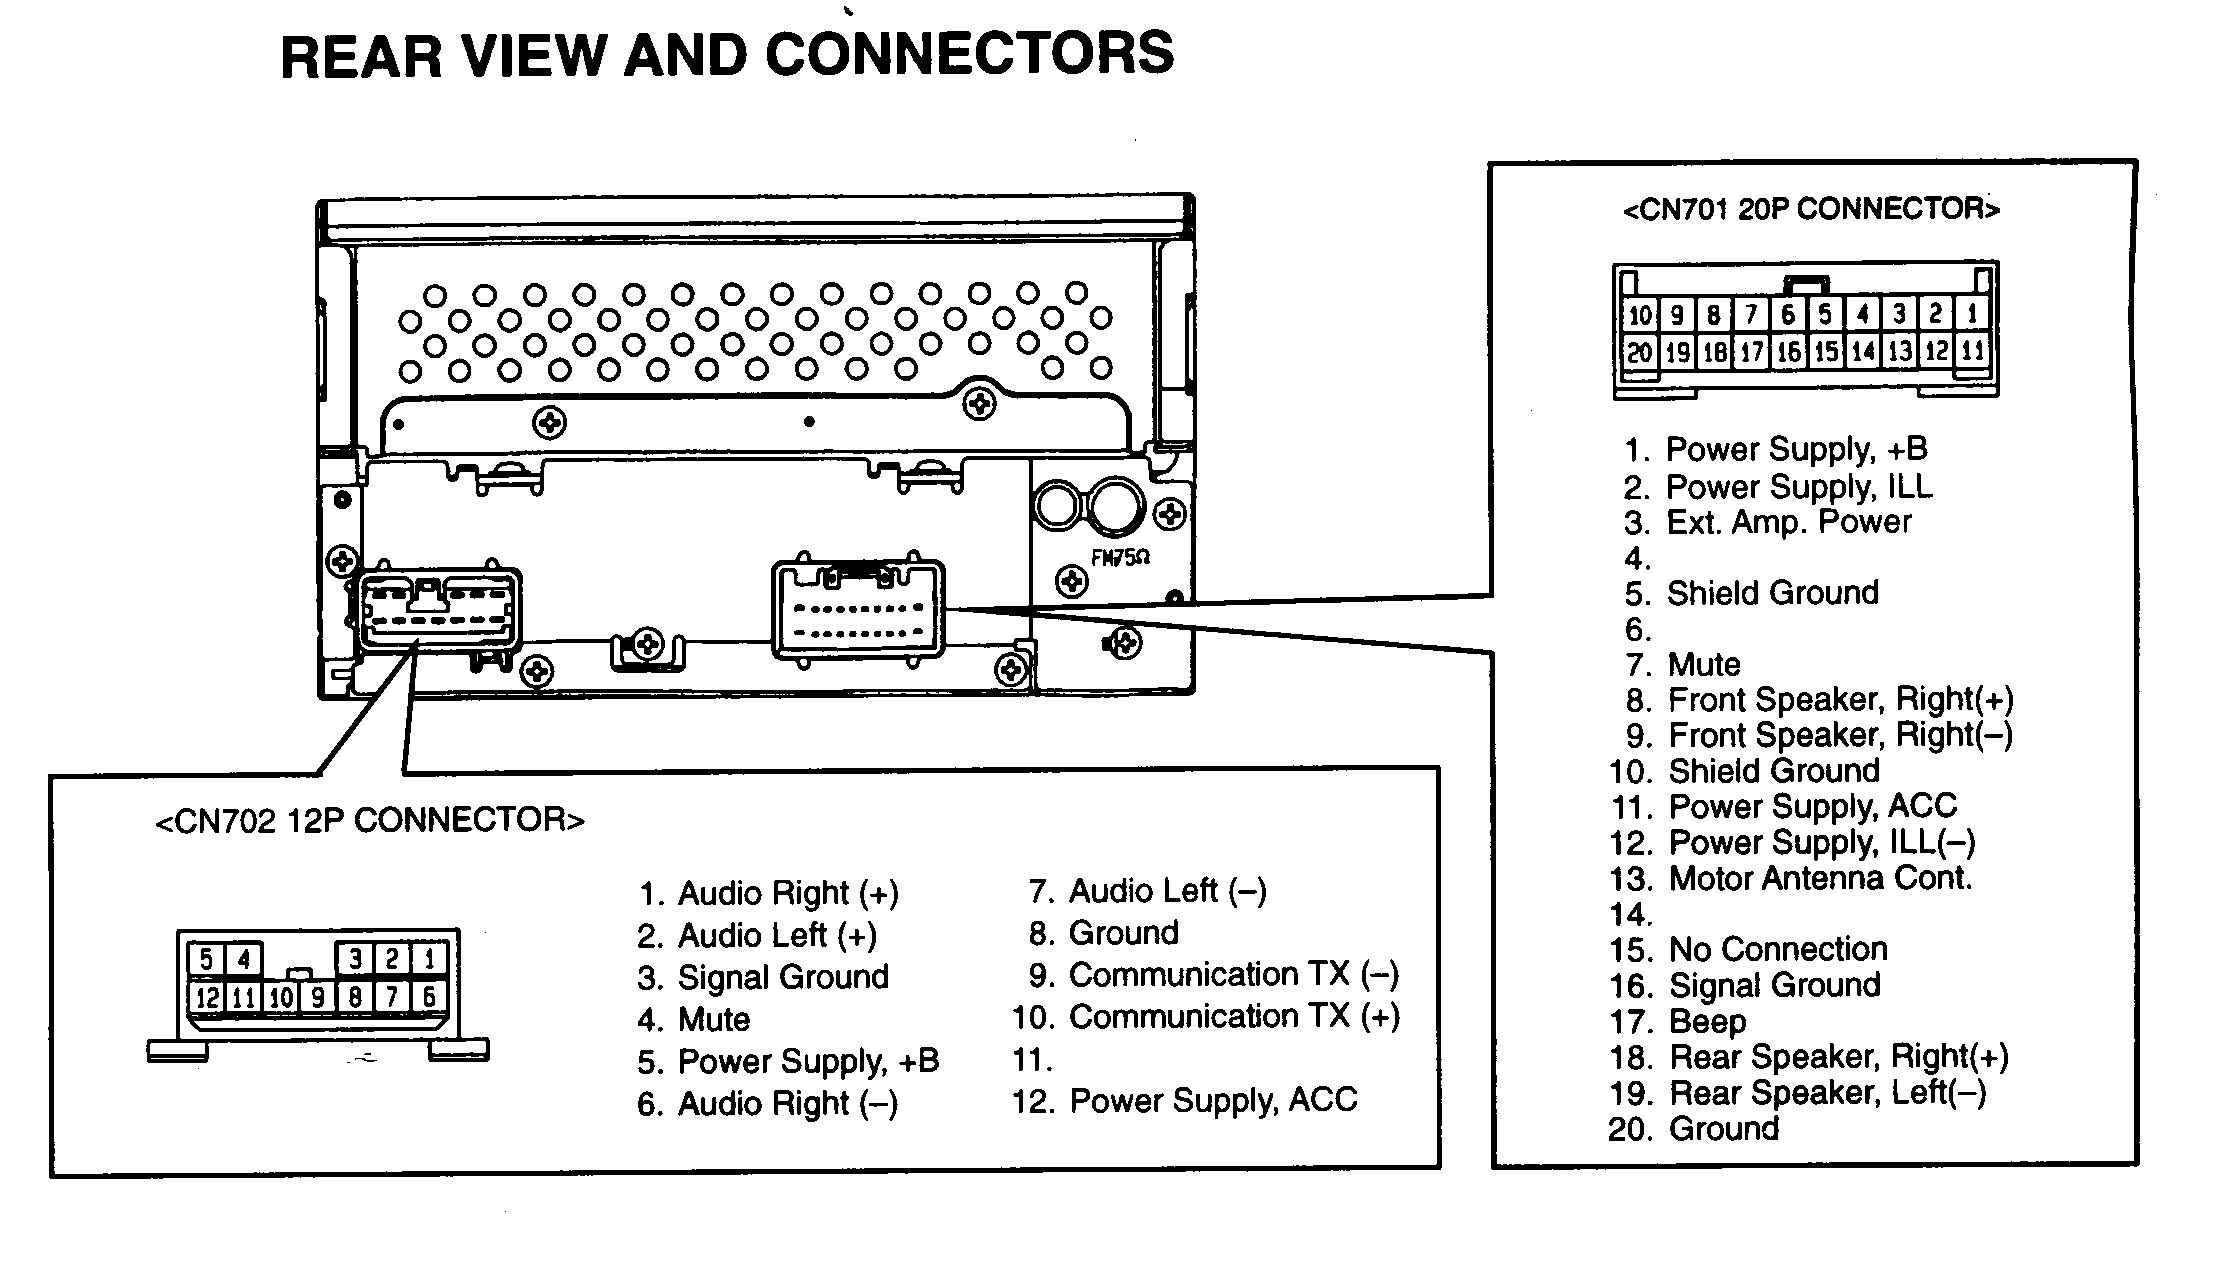 Toyota Car Stereo Wiring - Wiring Diagram Data Oreo - Car Amp Wiring Diagram